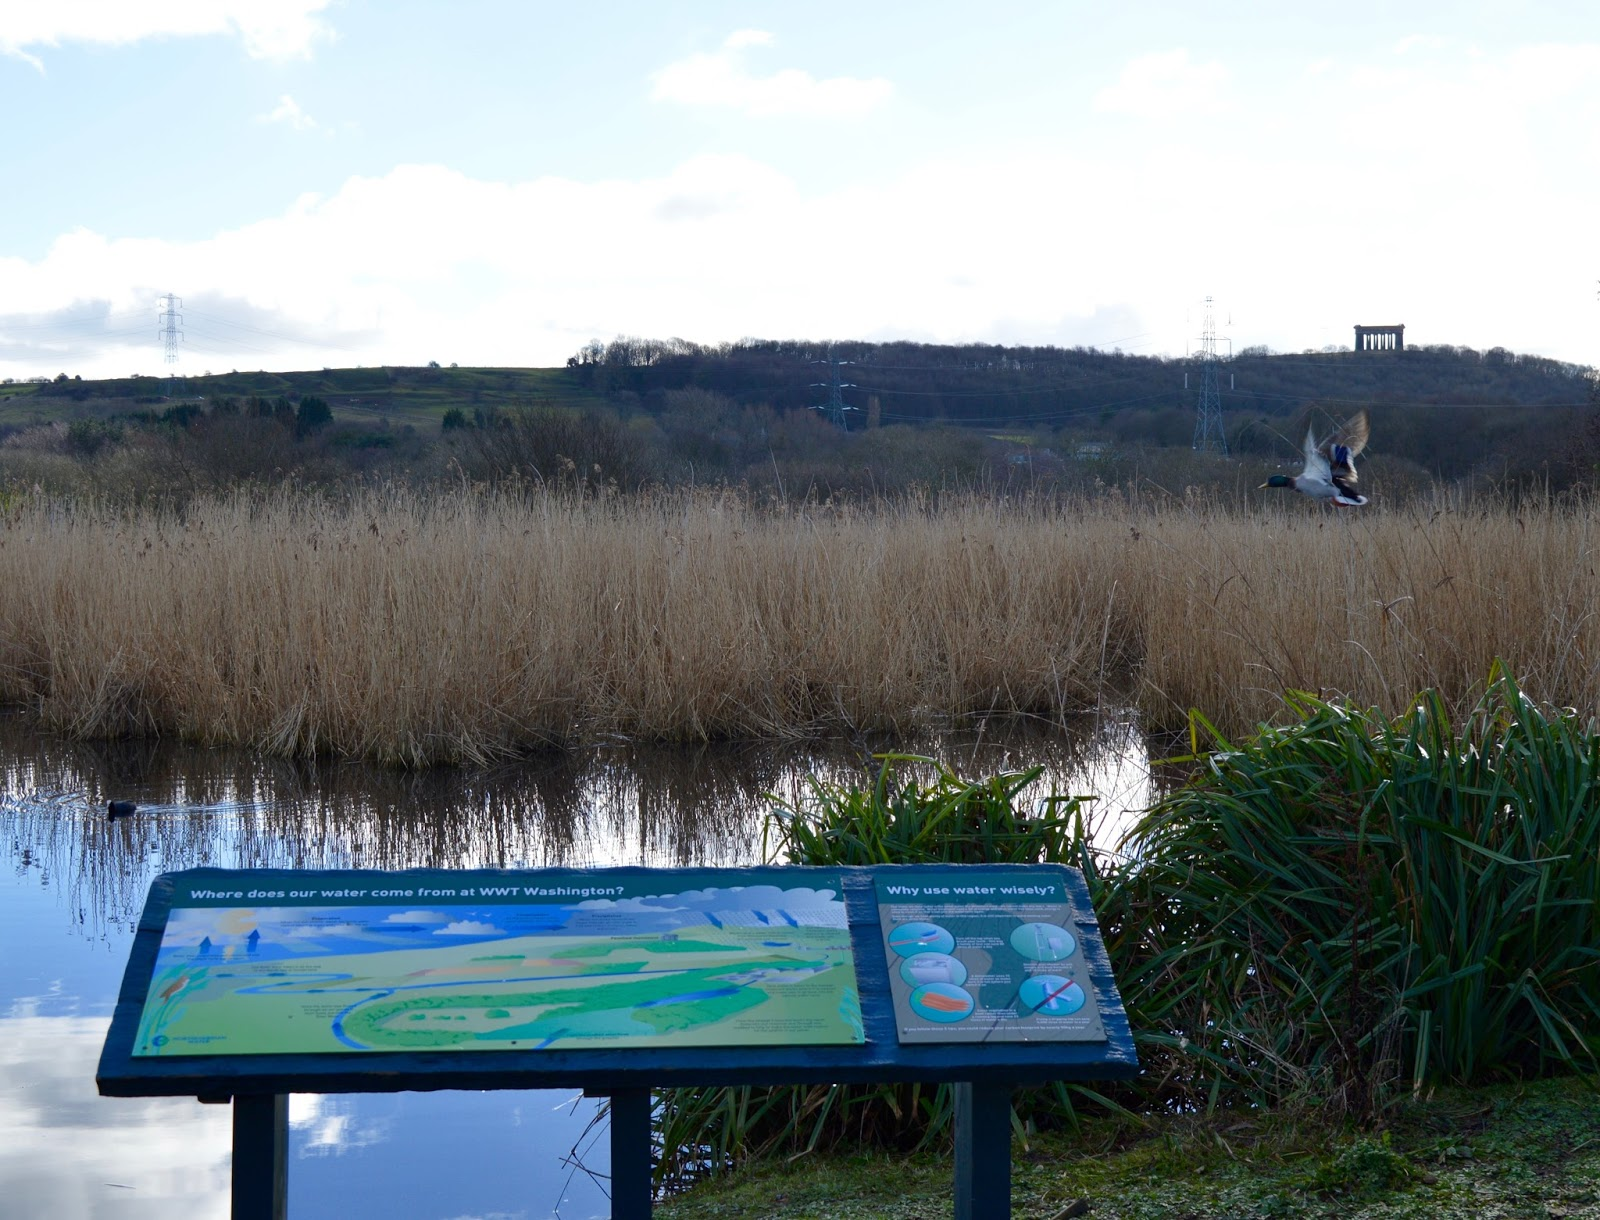 WWT Washington Wetland Centre | An Accessible North East Day Out for the Whole Family - views of Penshaw monument